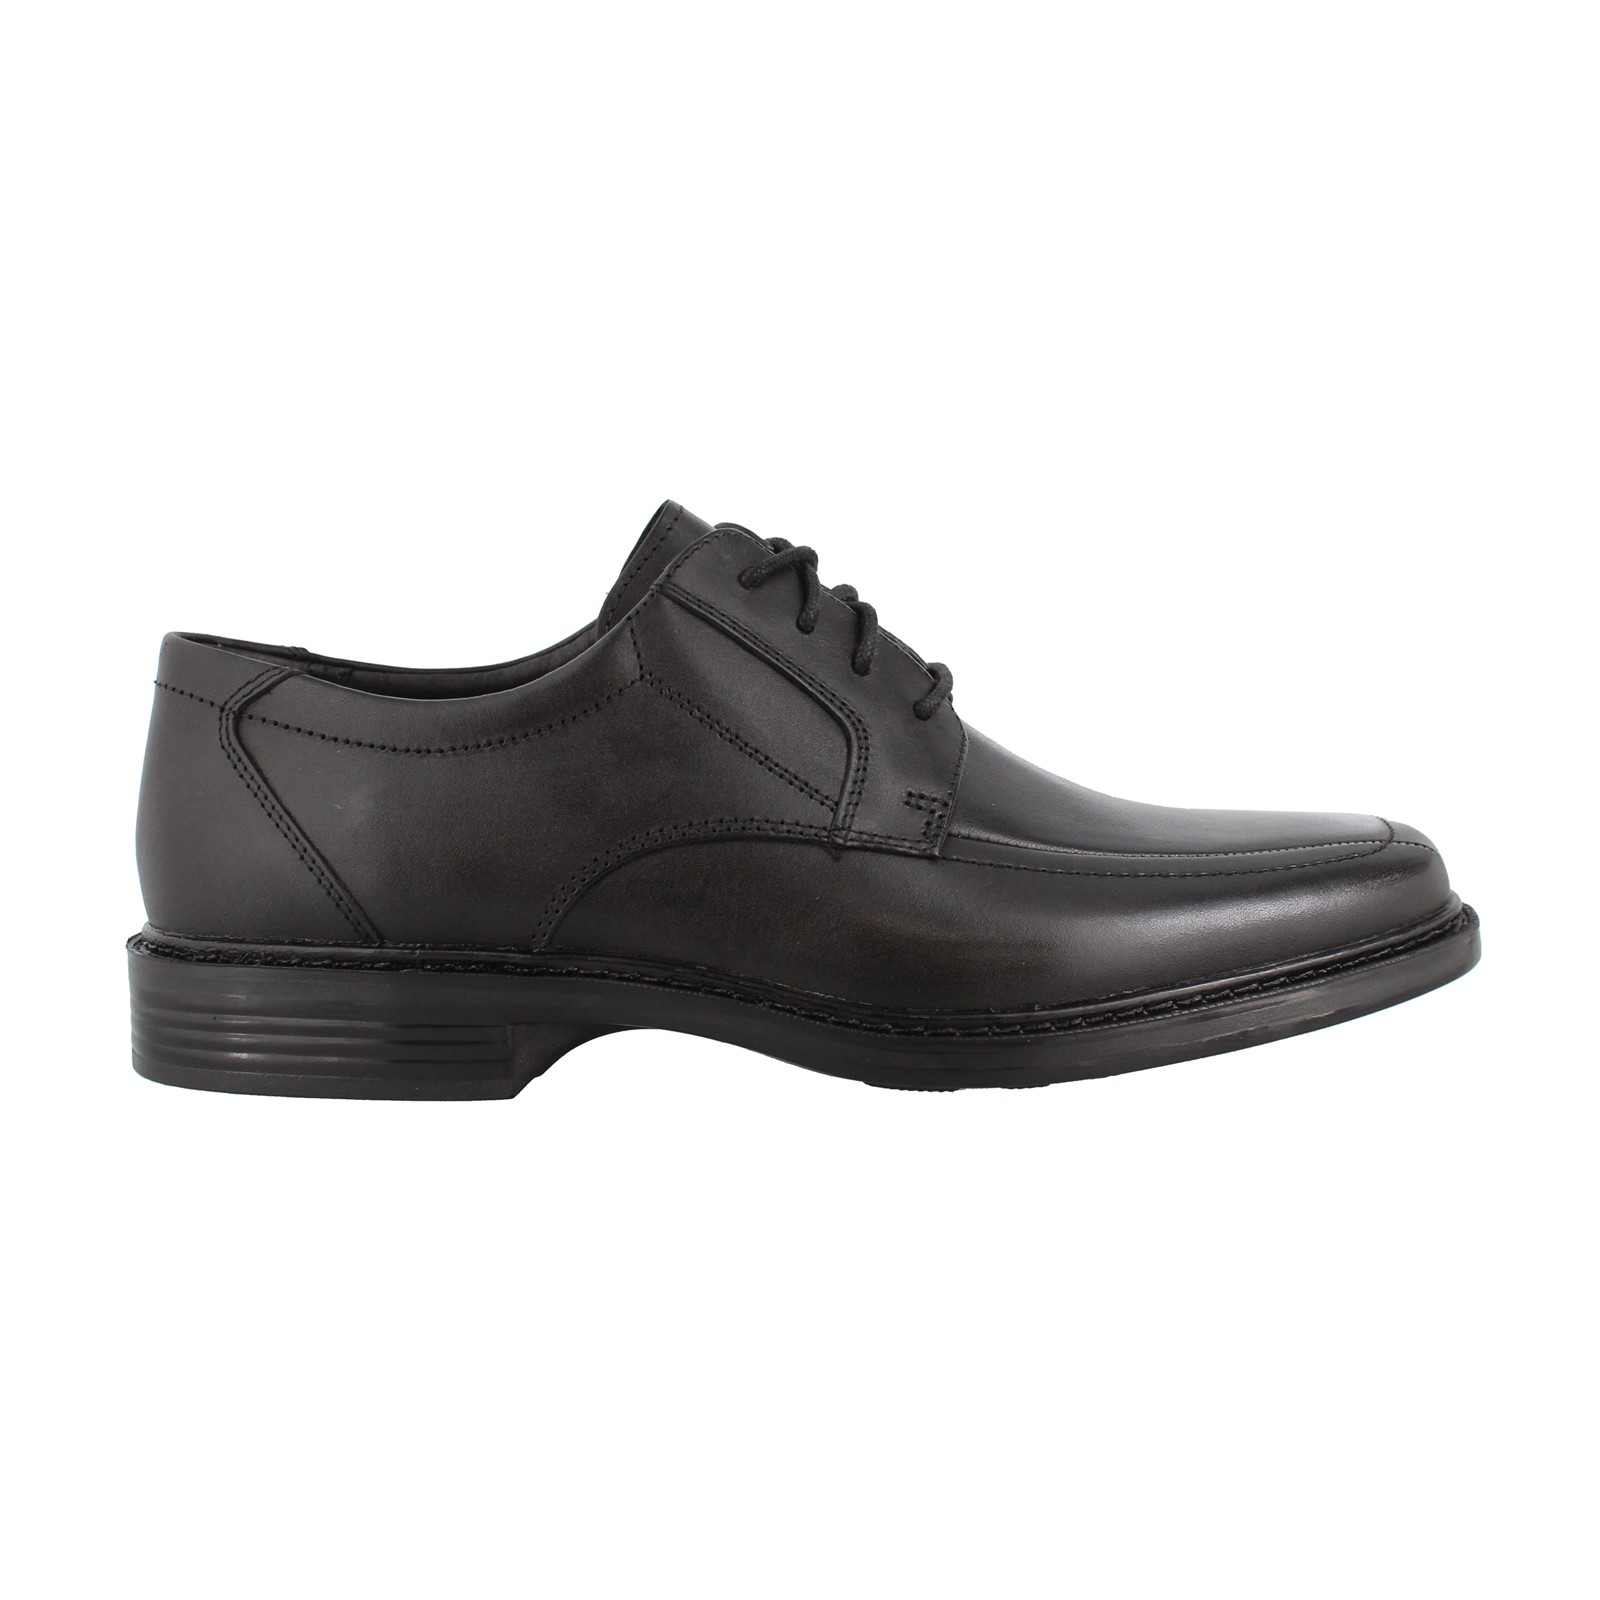 Men's Bostonian, Espresso Lace up Oxfords